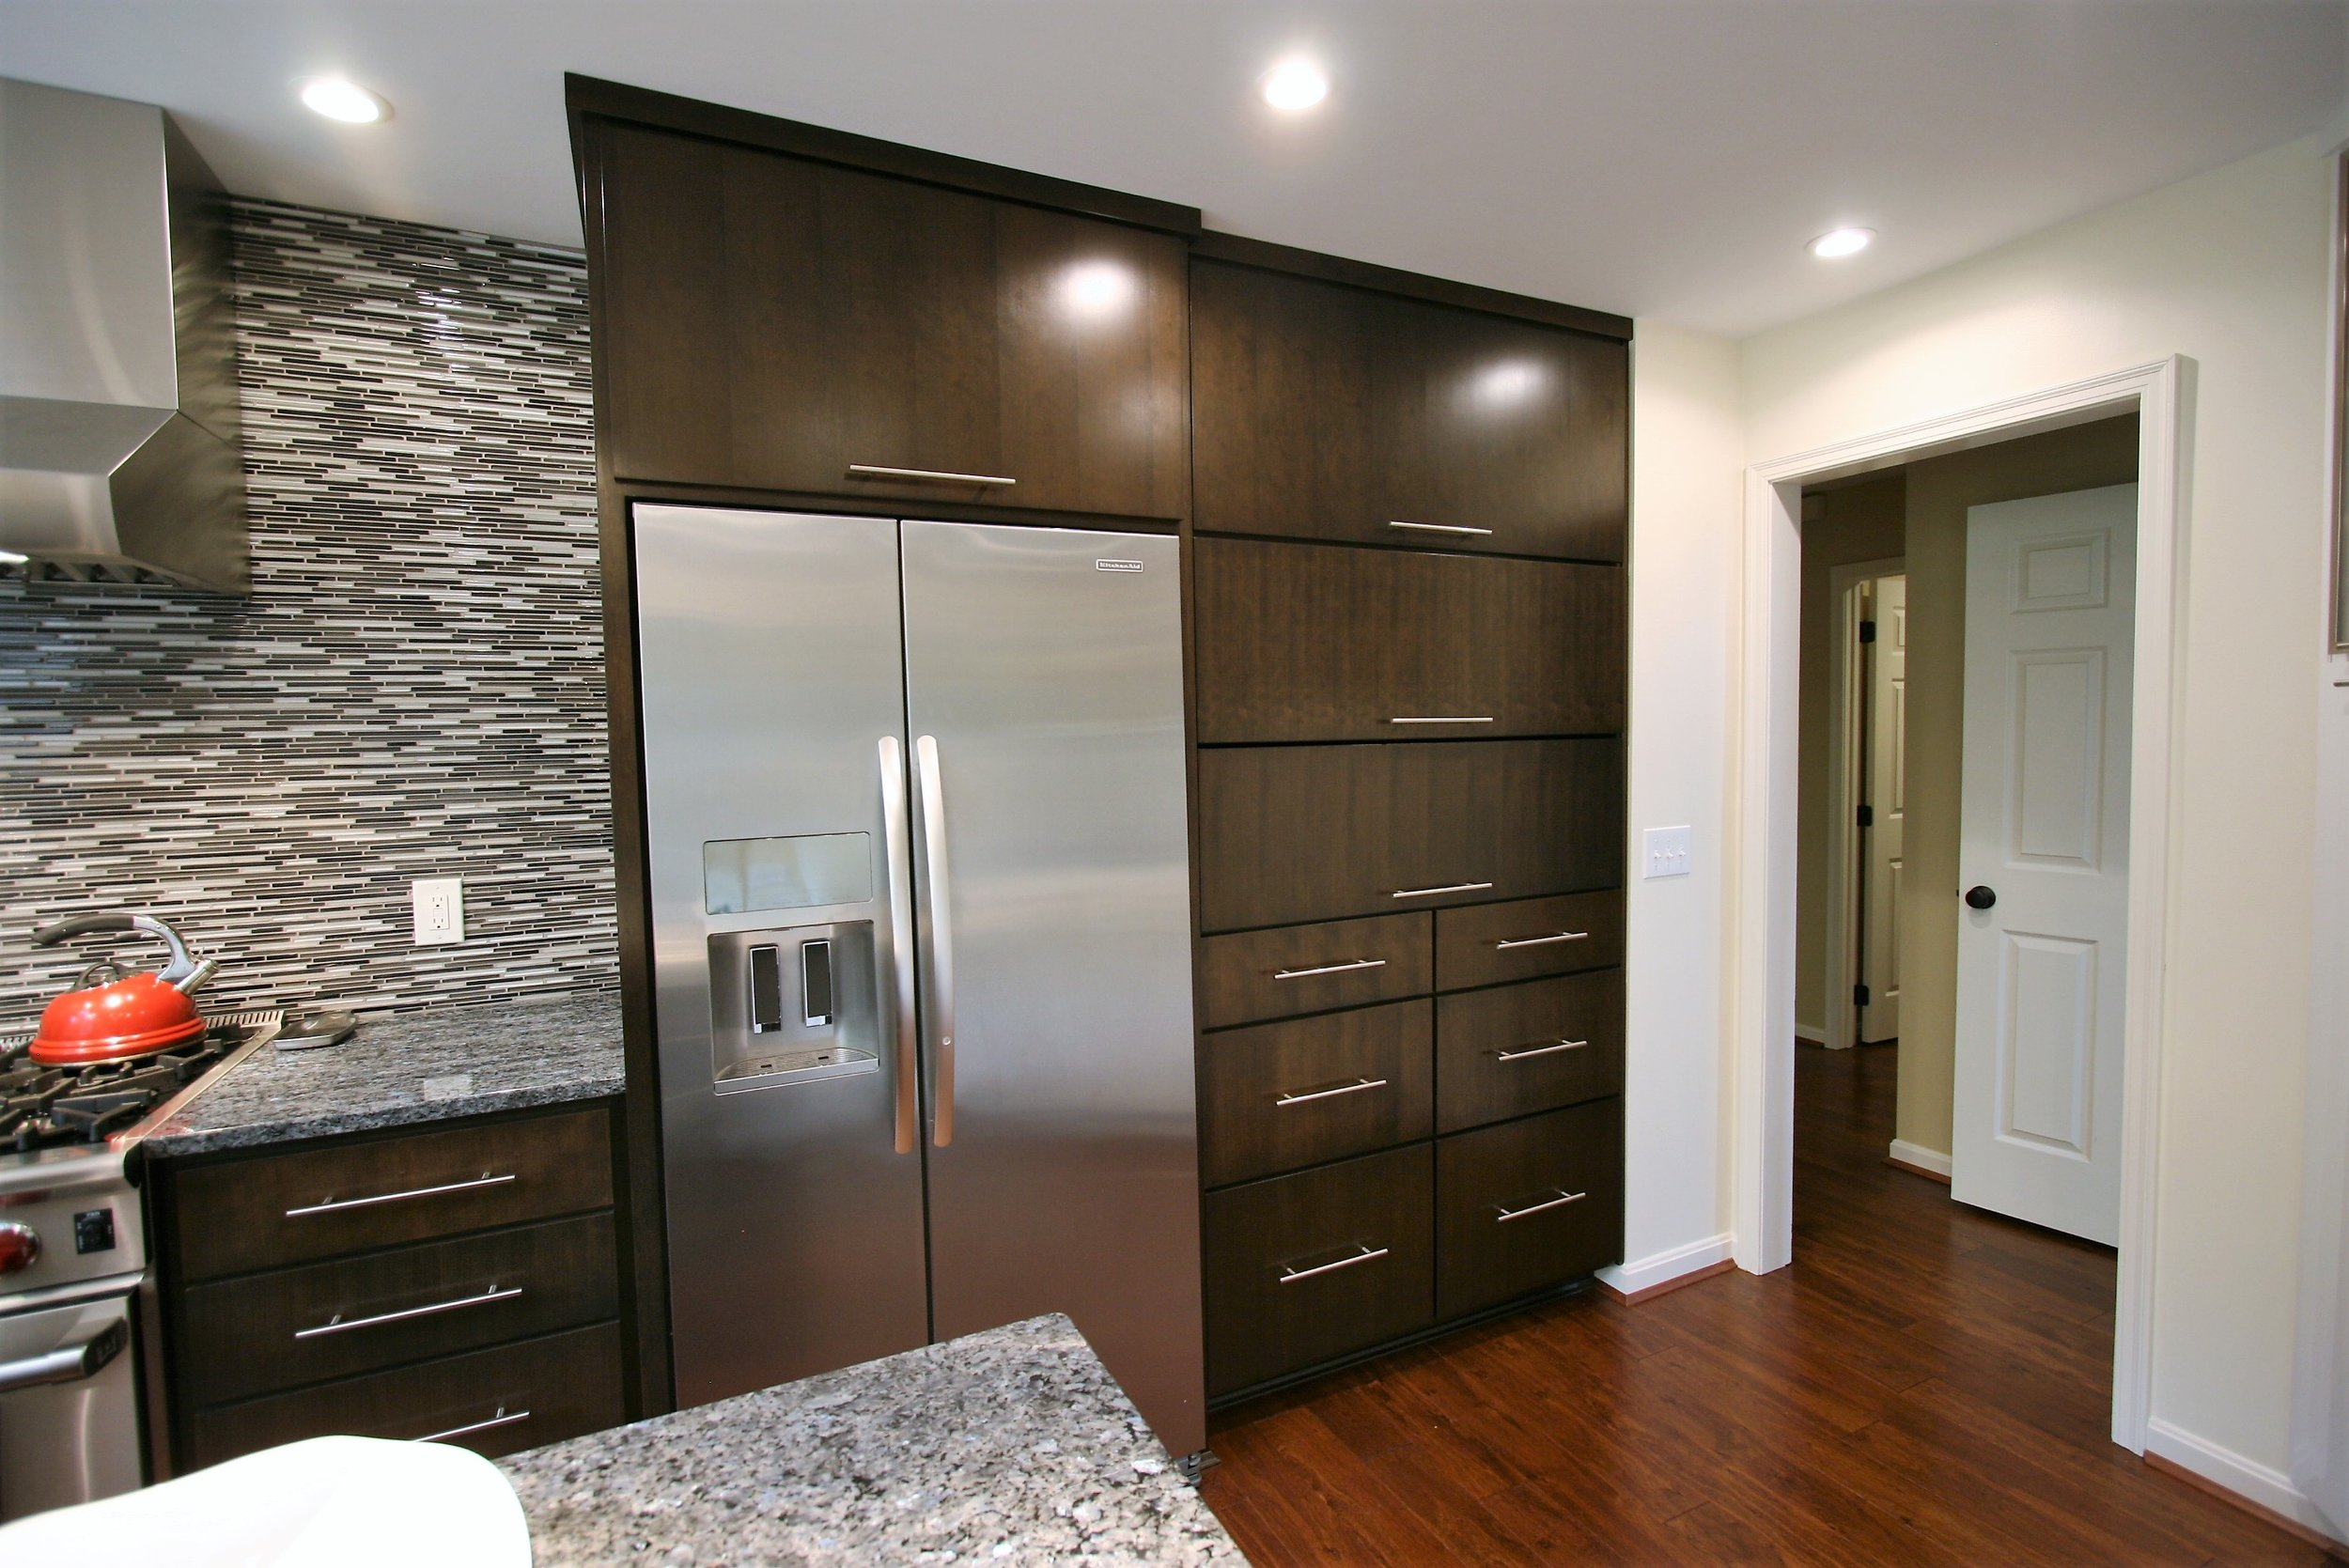 kitchen pantry and refrigerator